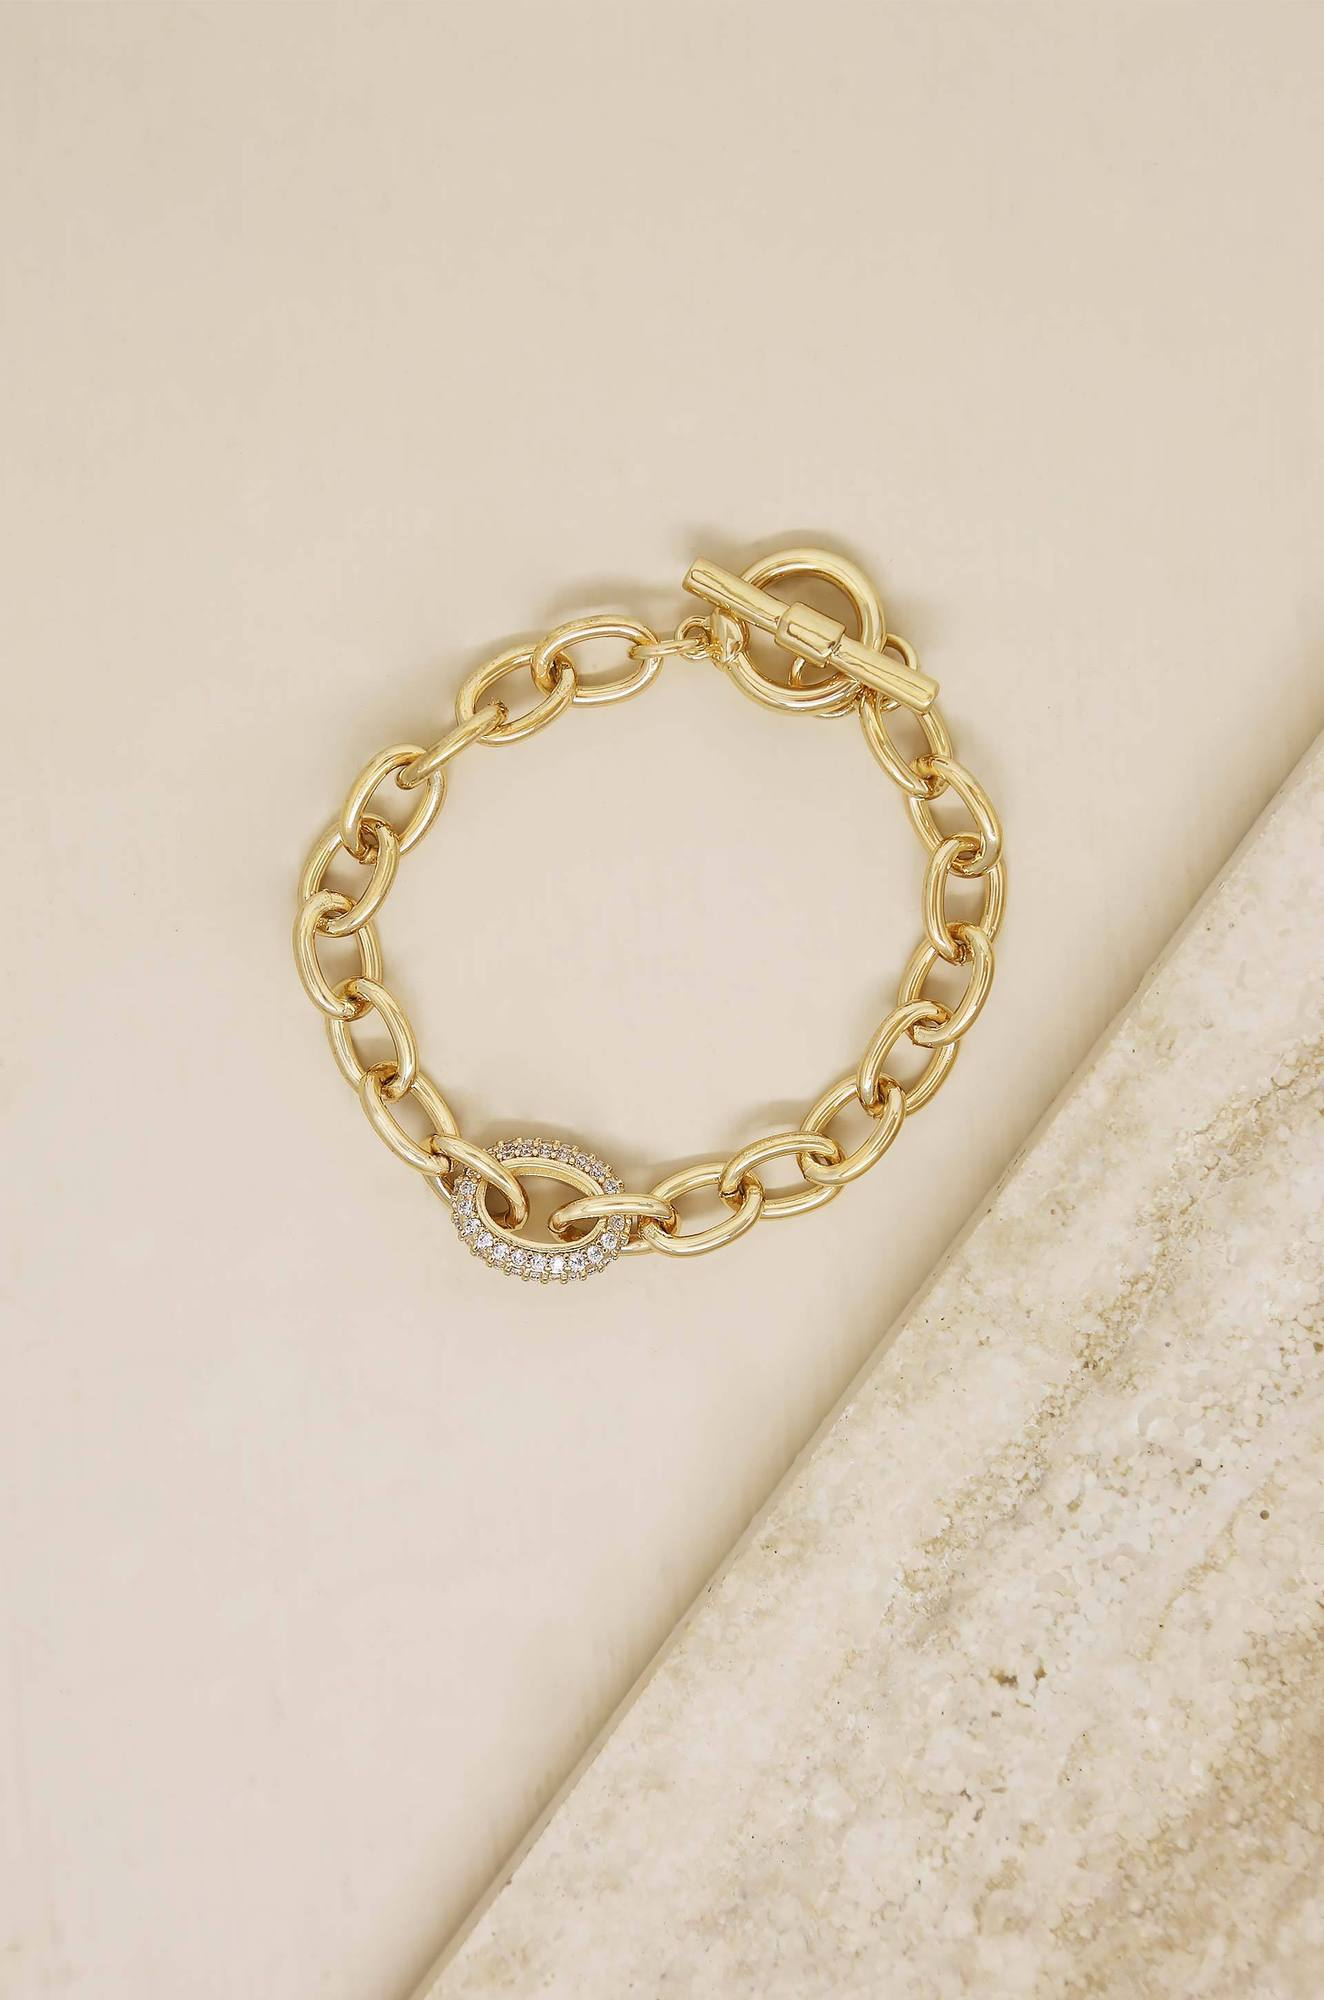 Ettika True to You 18k Gold Plated Chain Bracelet - Izzy & Gab